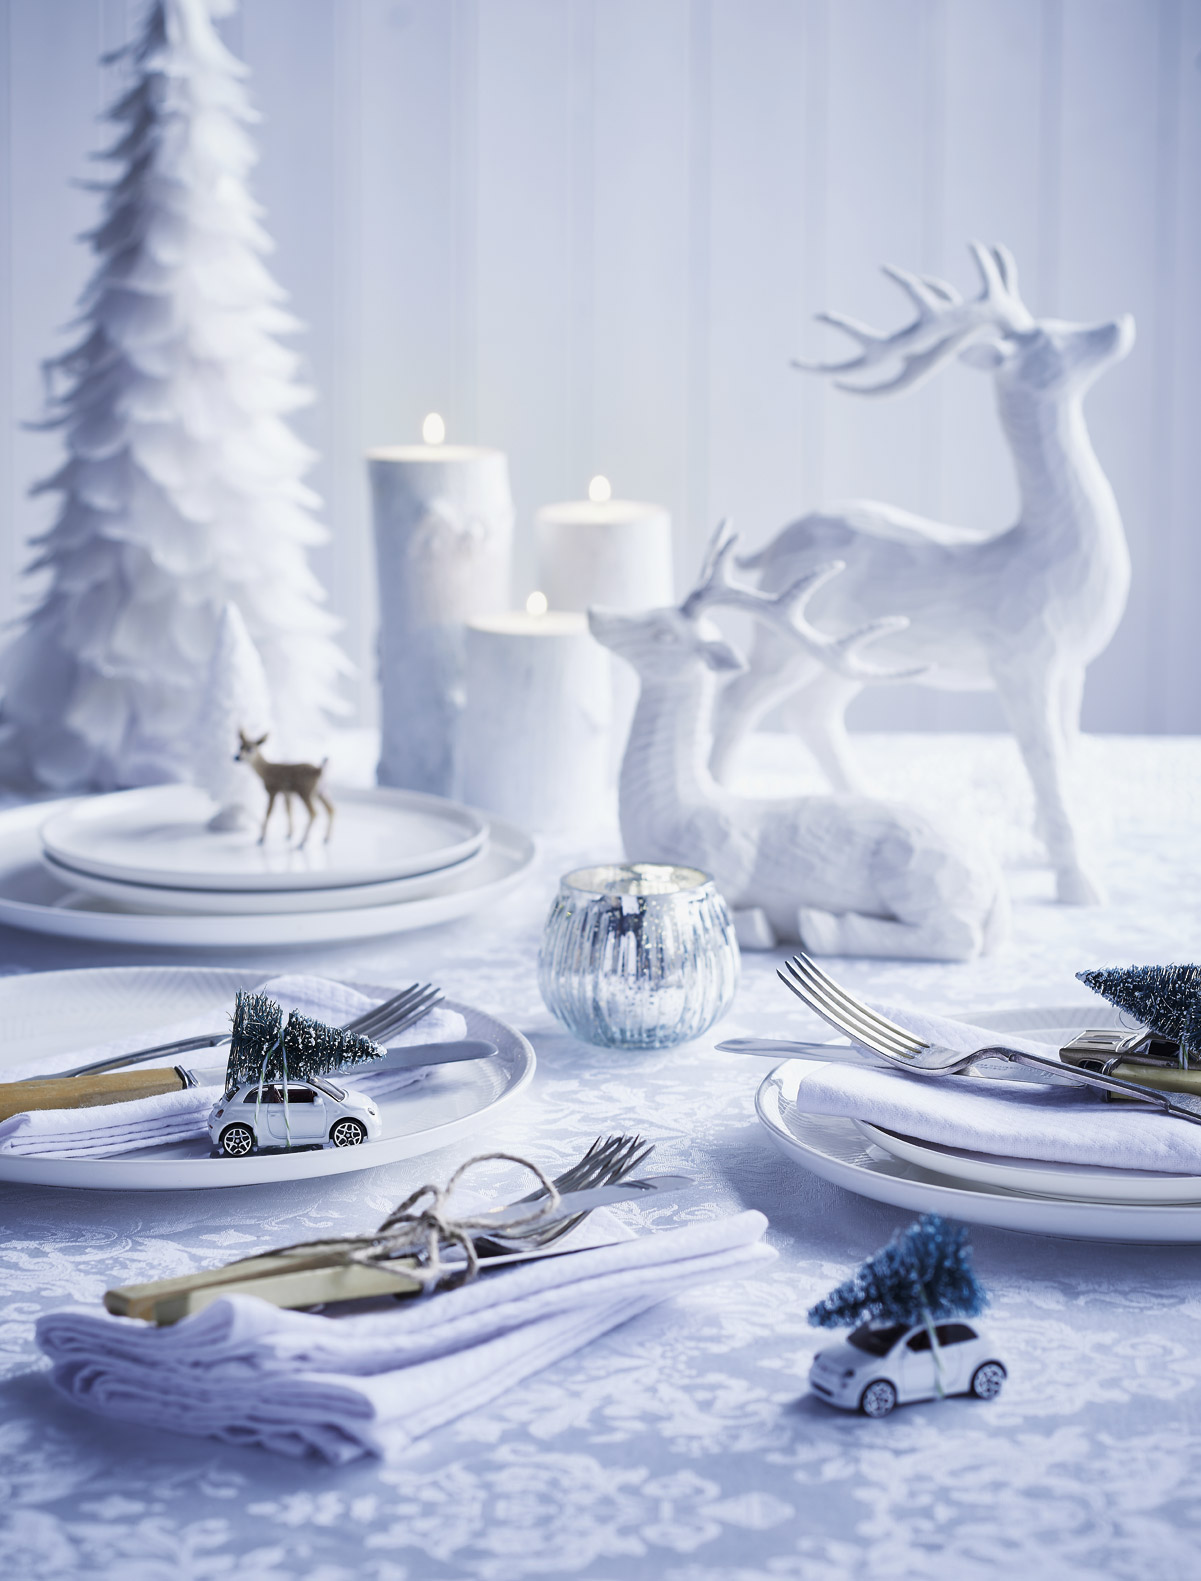 Christmas table setting with little cars